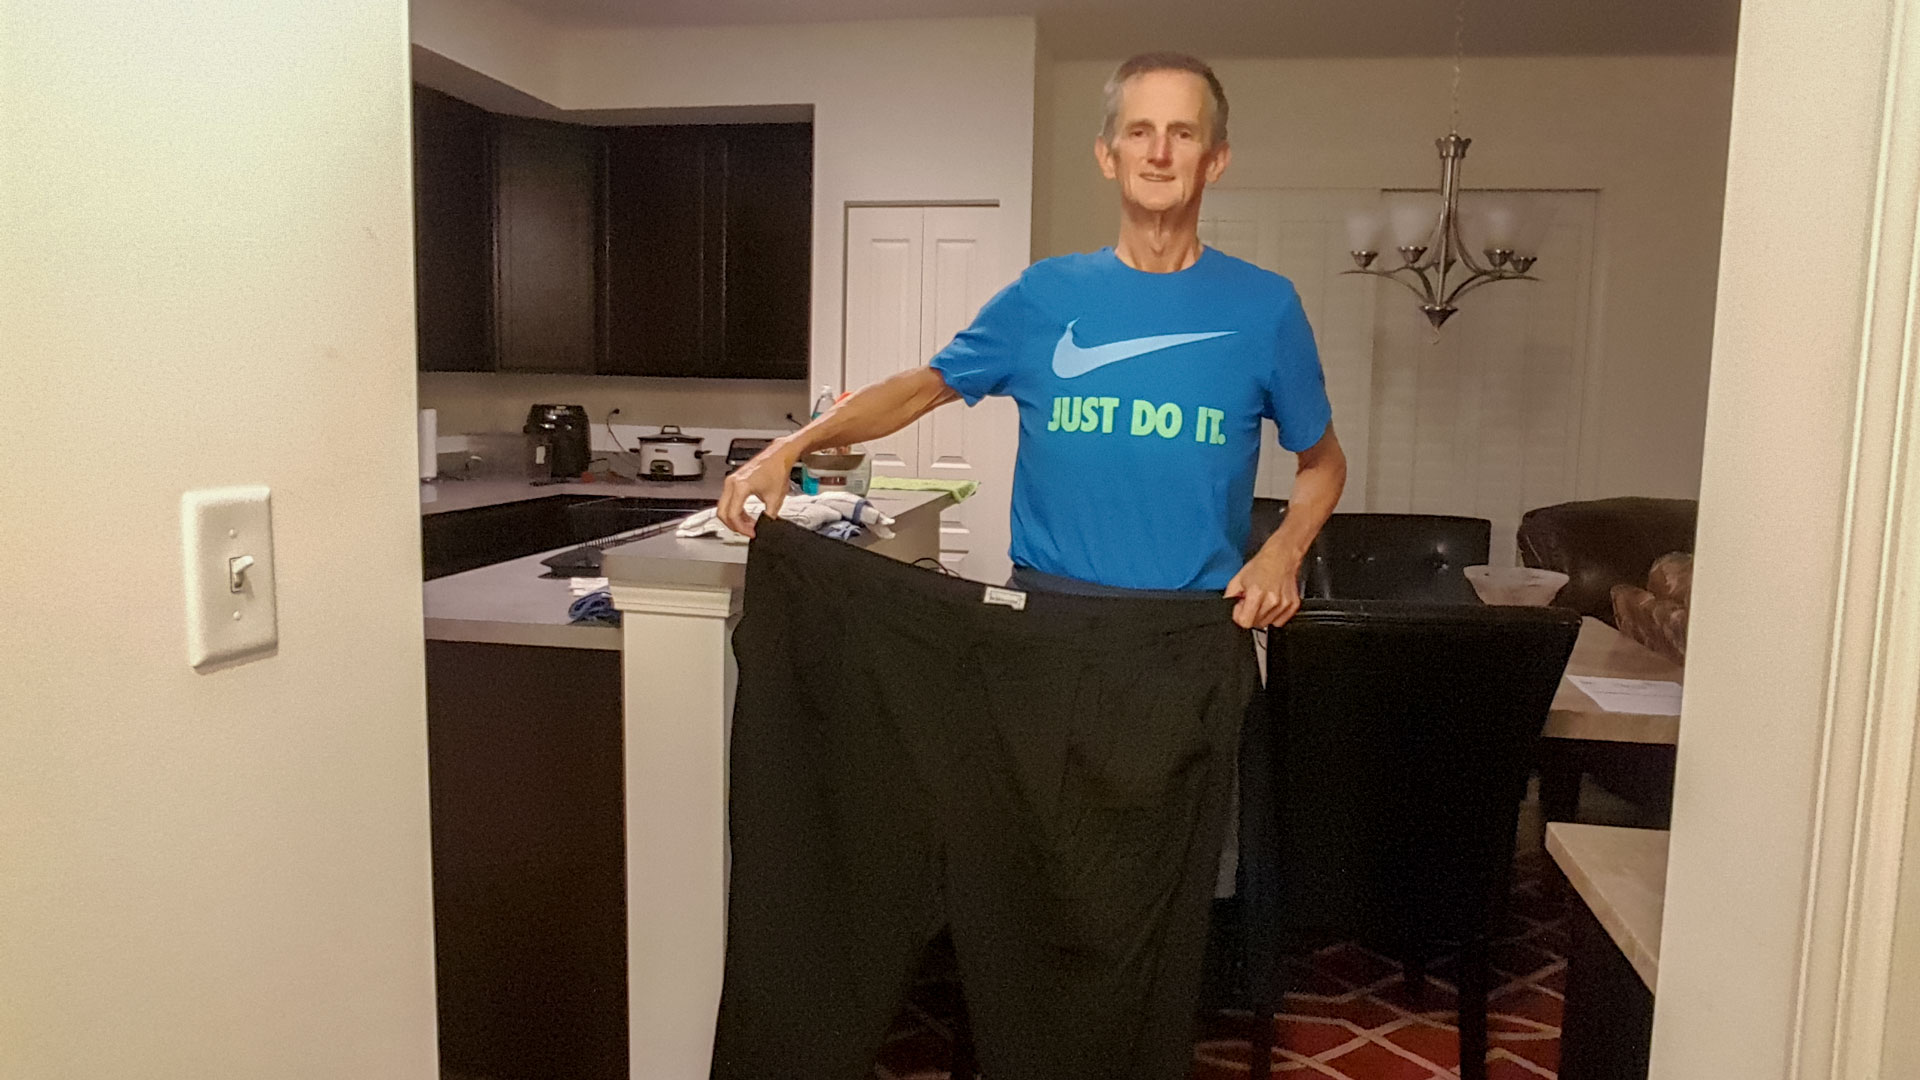 From 352 to 164 pounds: success story from low-carb conference